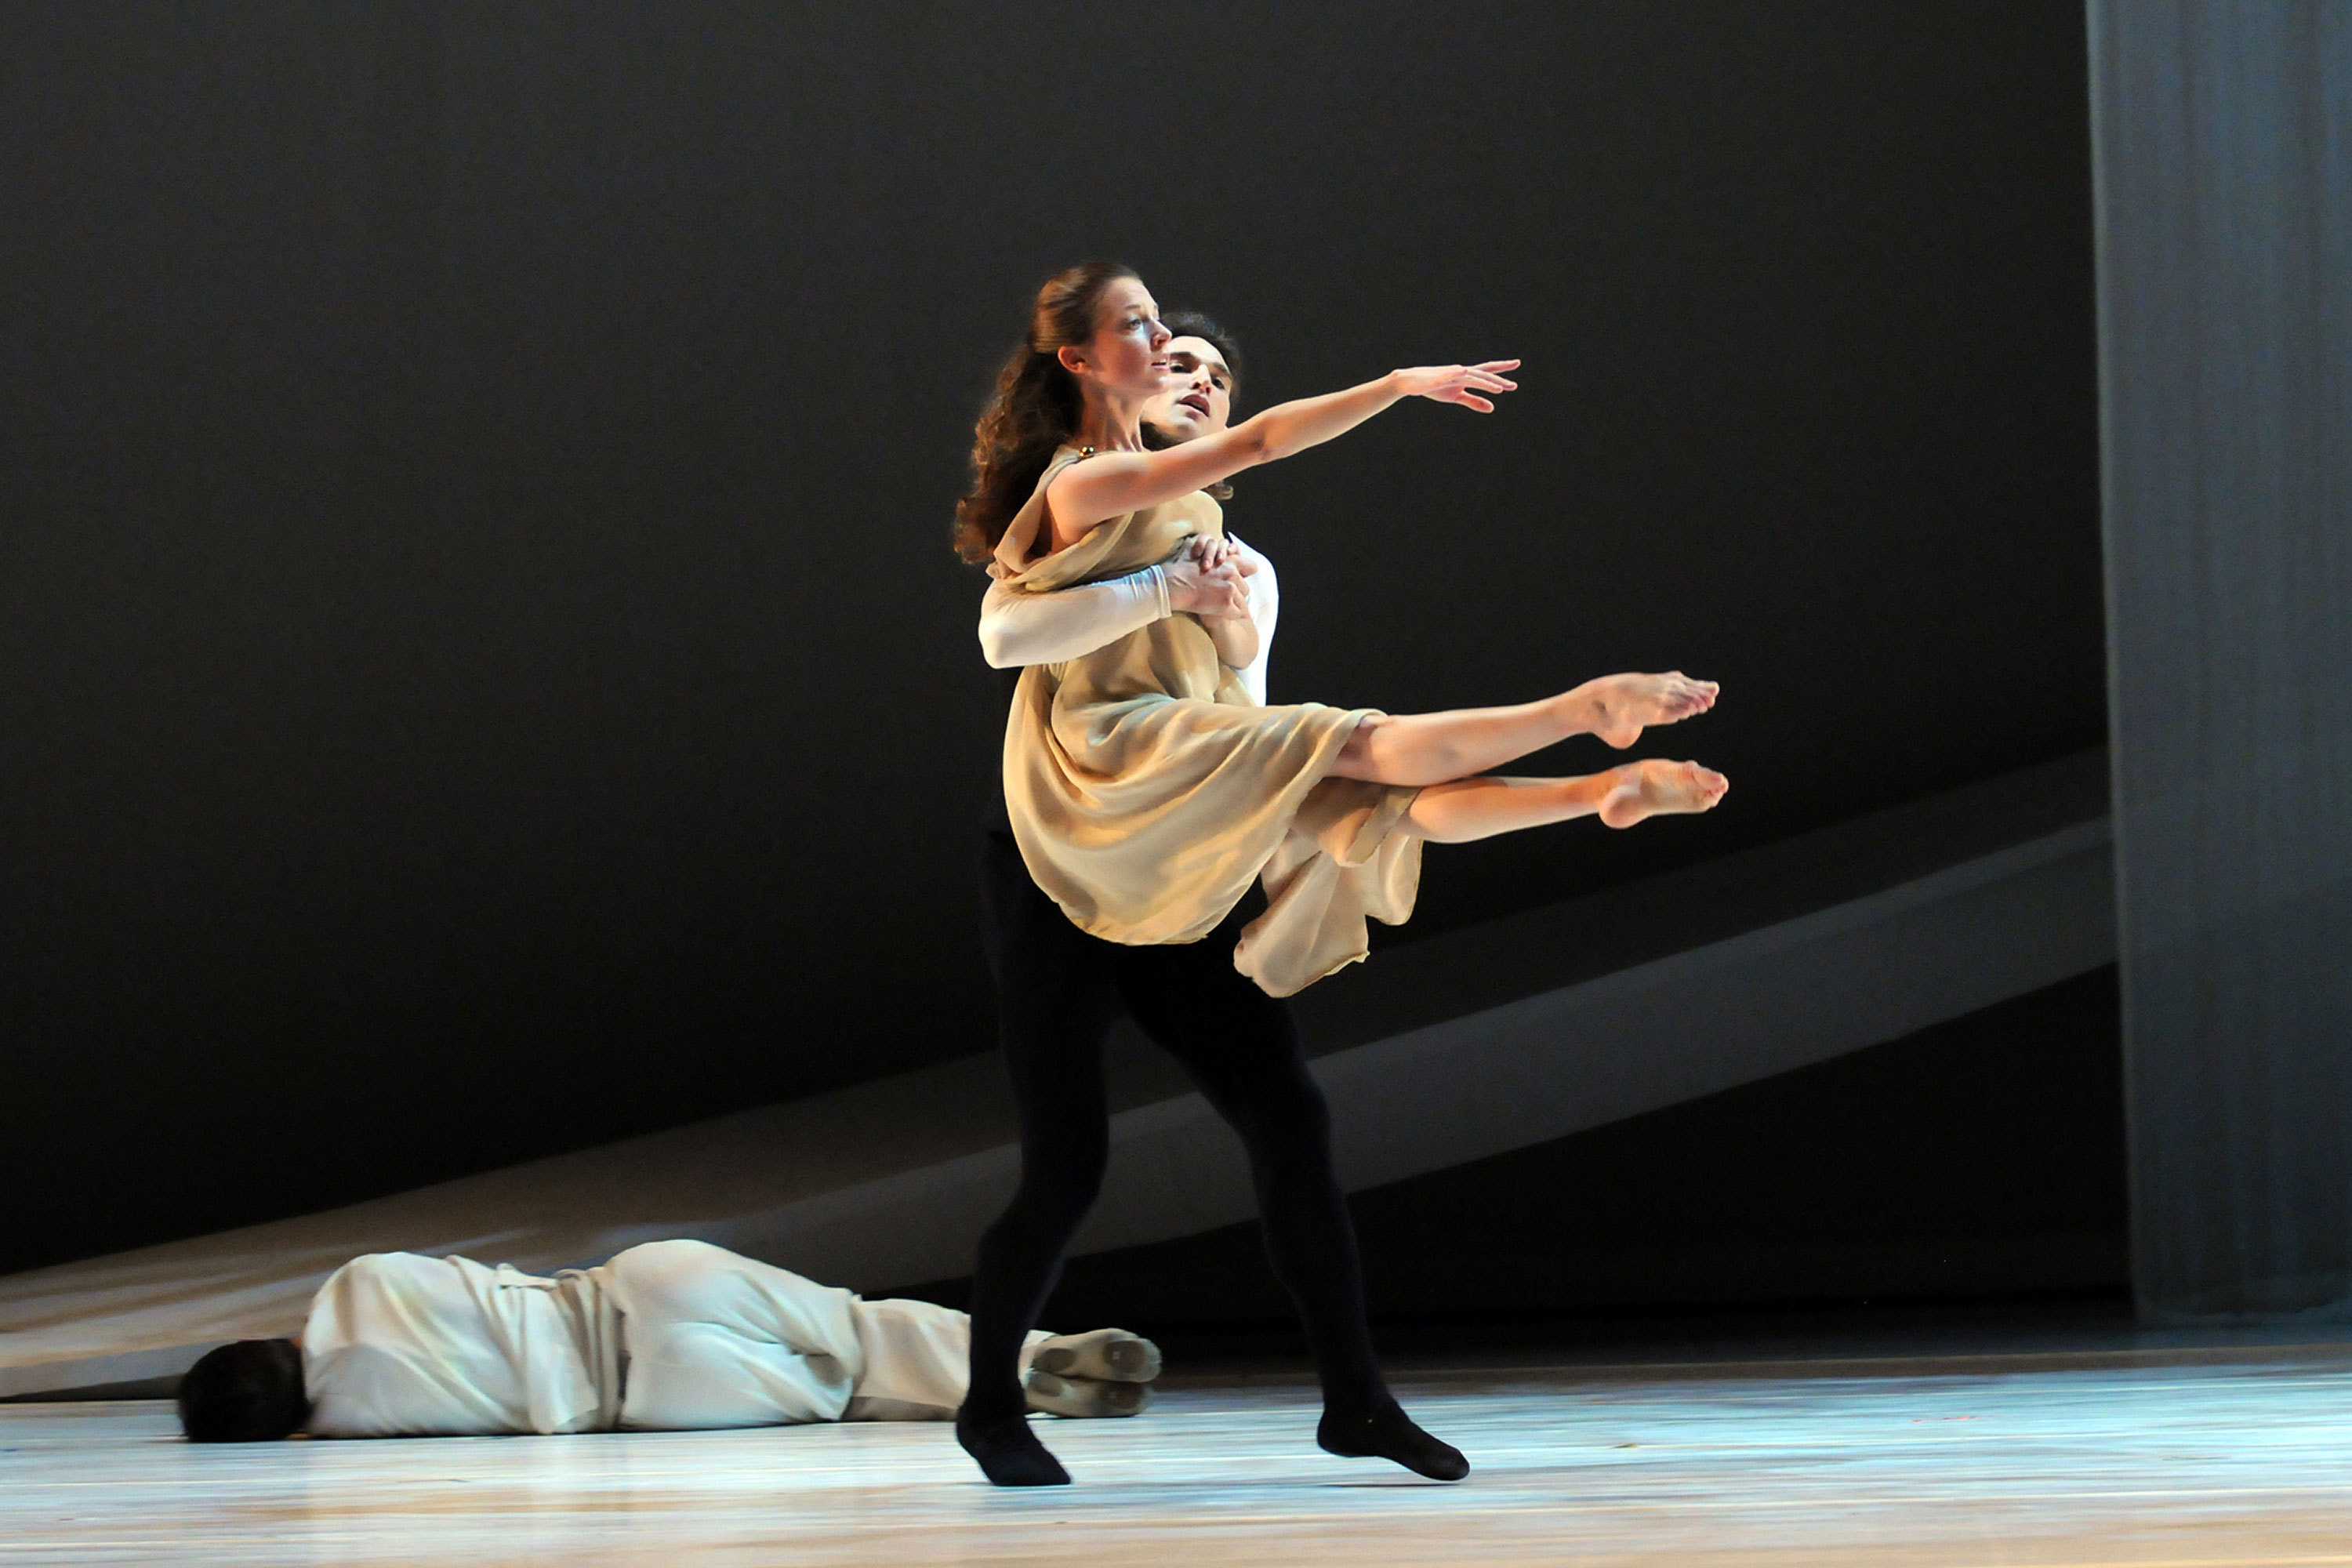 Juliet and Friar Lawrence dance together when Juliet is upset because of Romeo's departure.   (credit: Courtesy of Mandy Wilson)